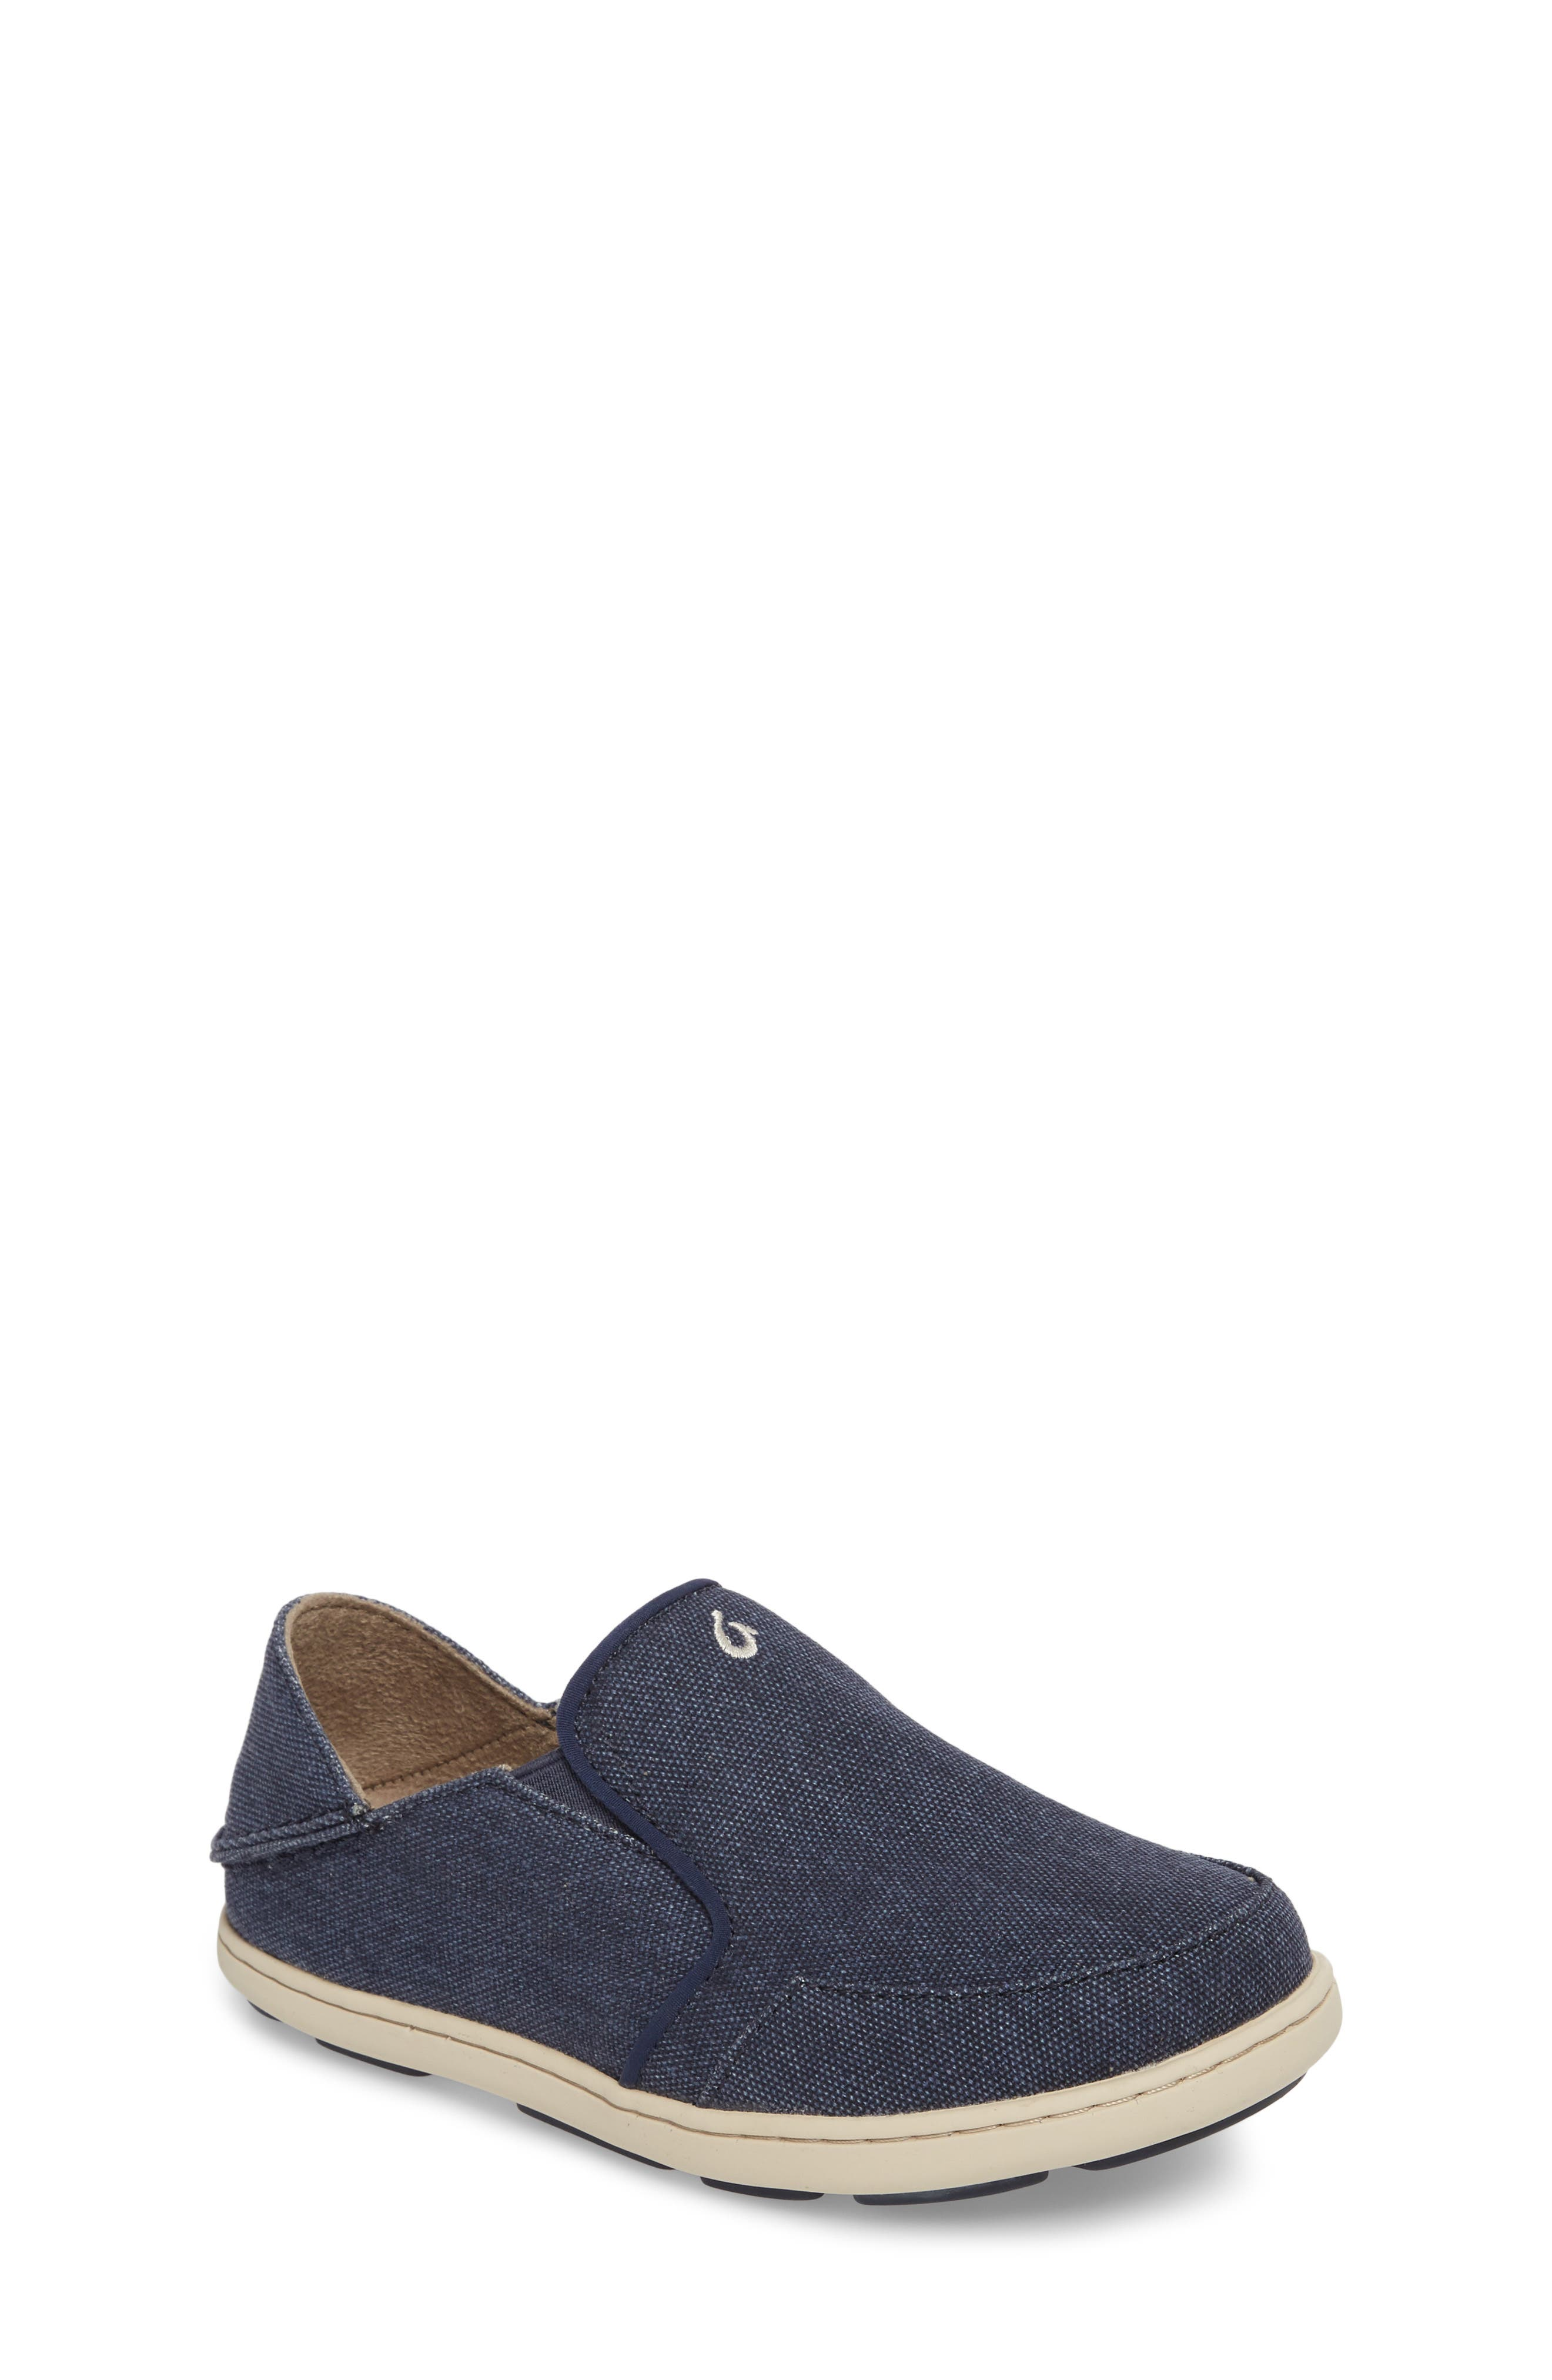 Nohea Lole Collapsible Slip-On,                             Main thumbnail 1, color,                             Trench Blue